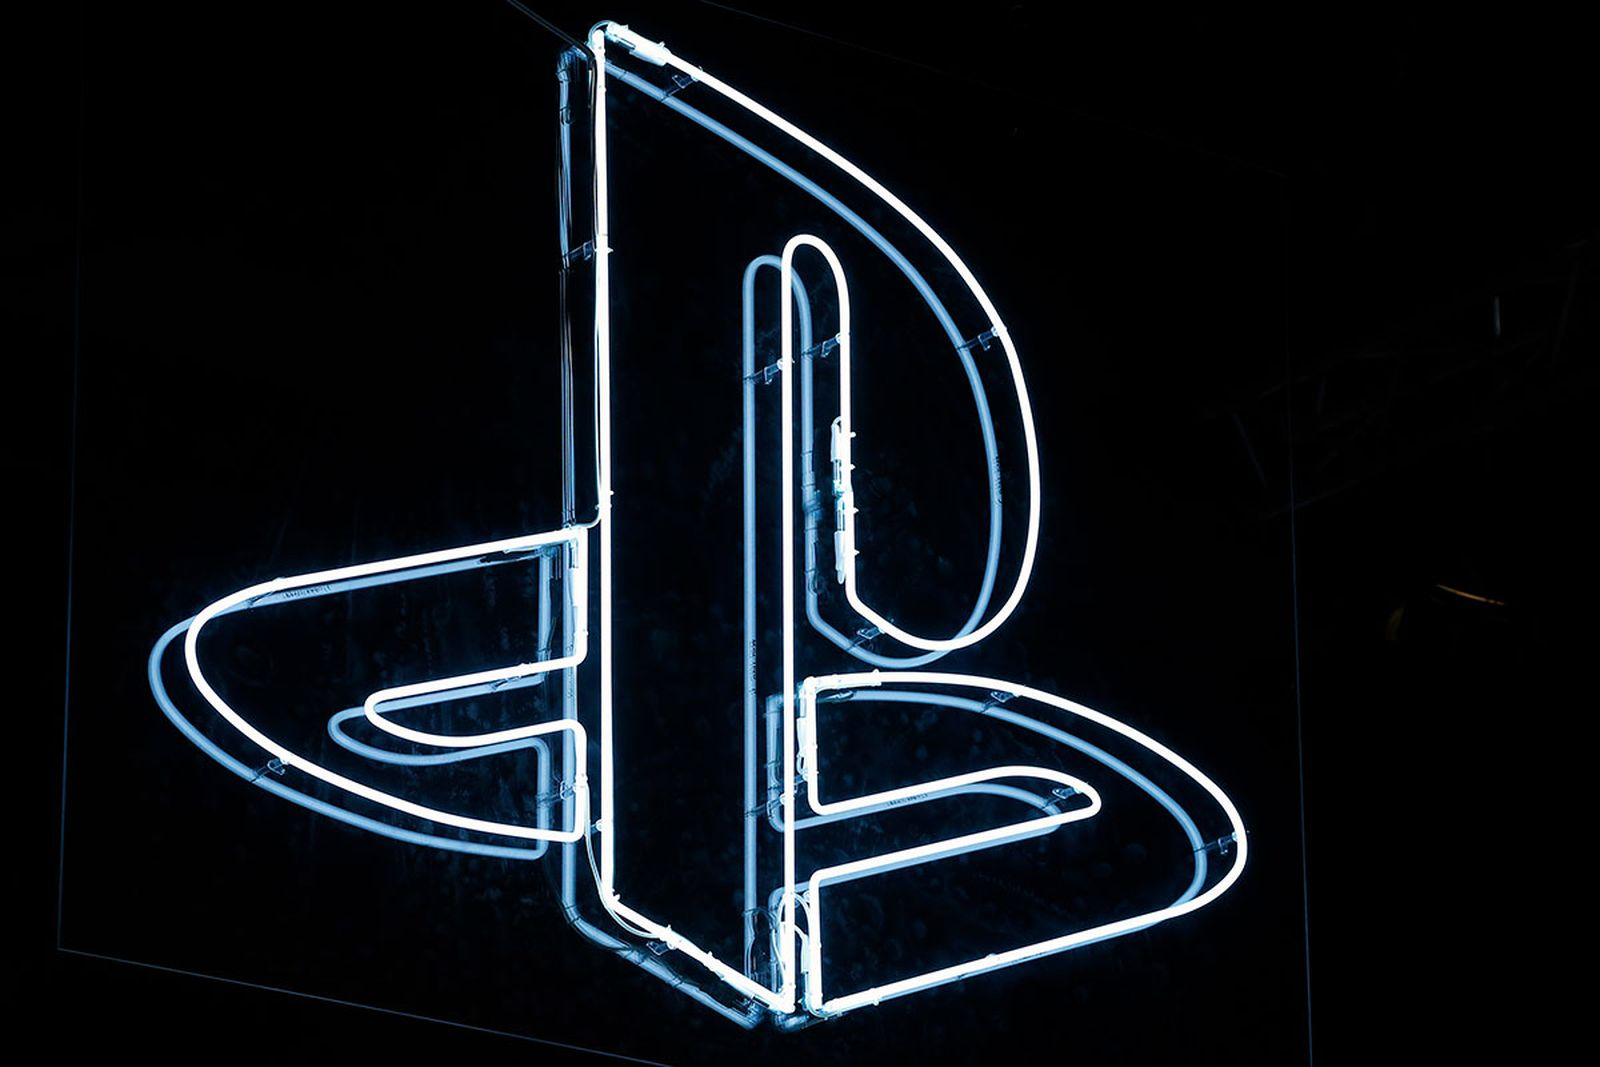 Sony Playstation 5 release date